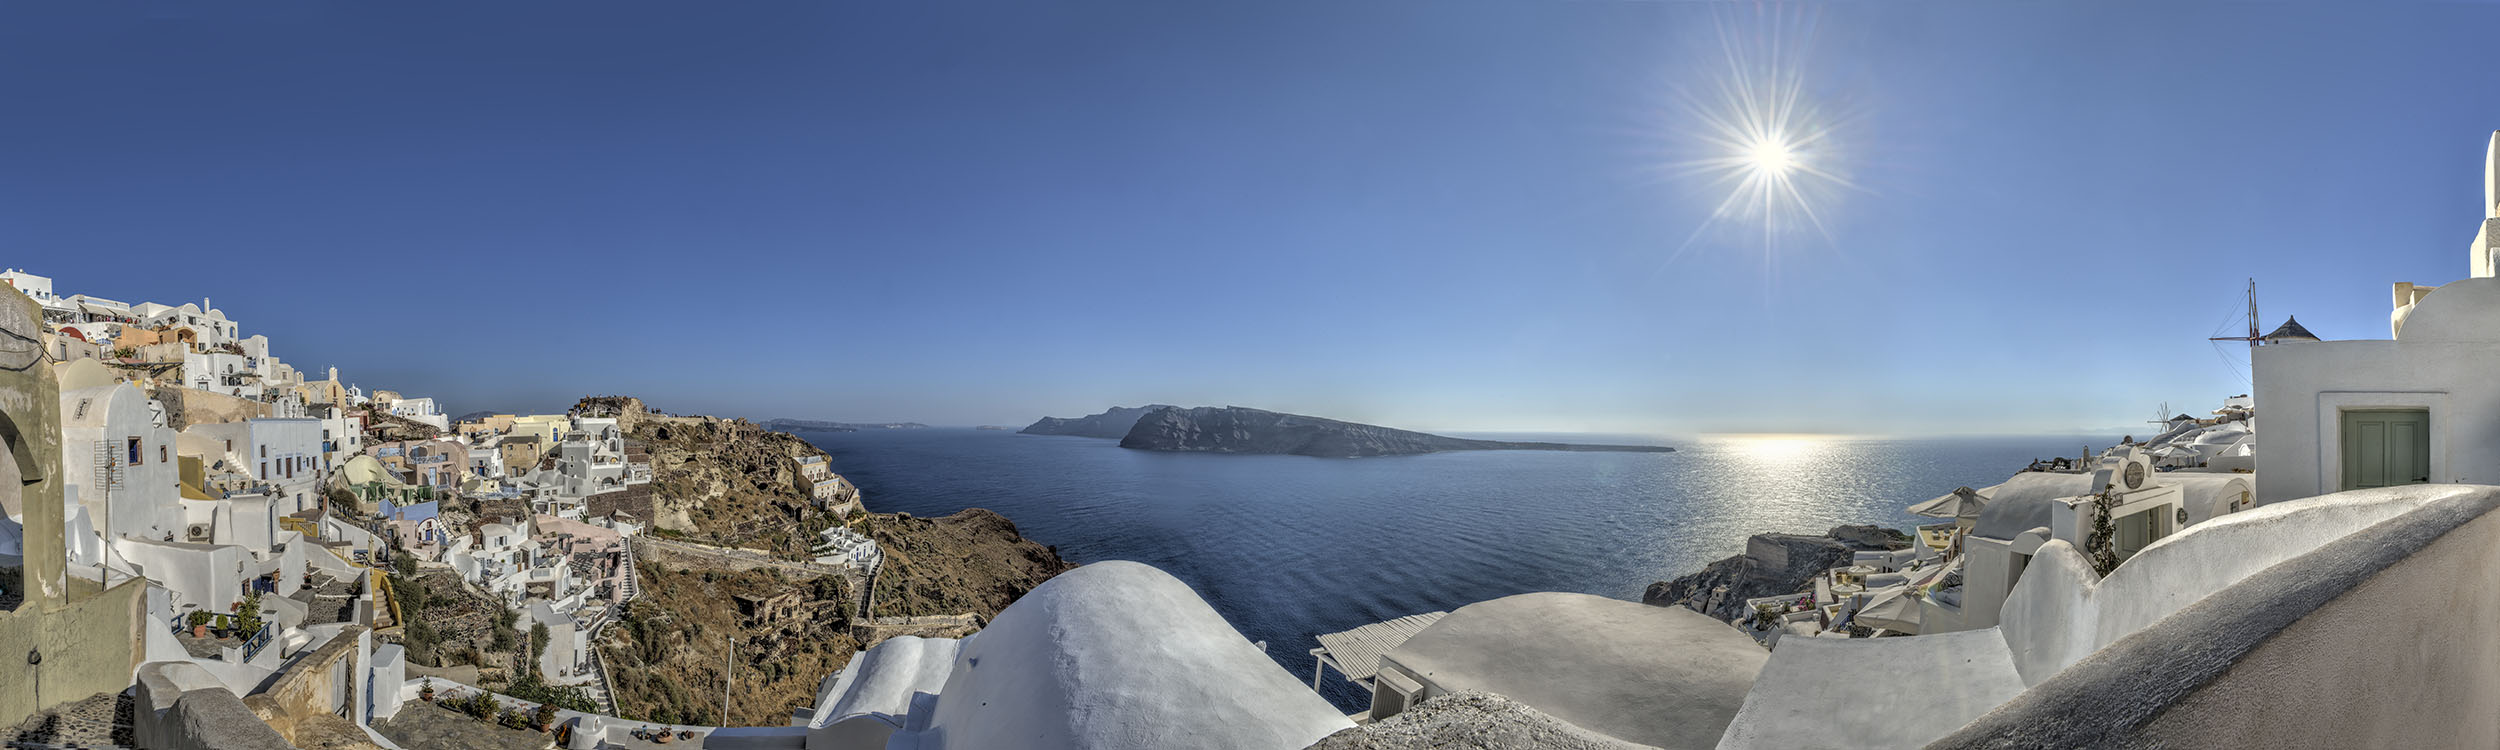 Afternoon in Santorini